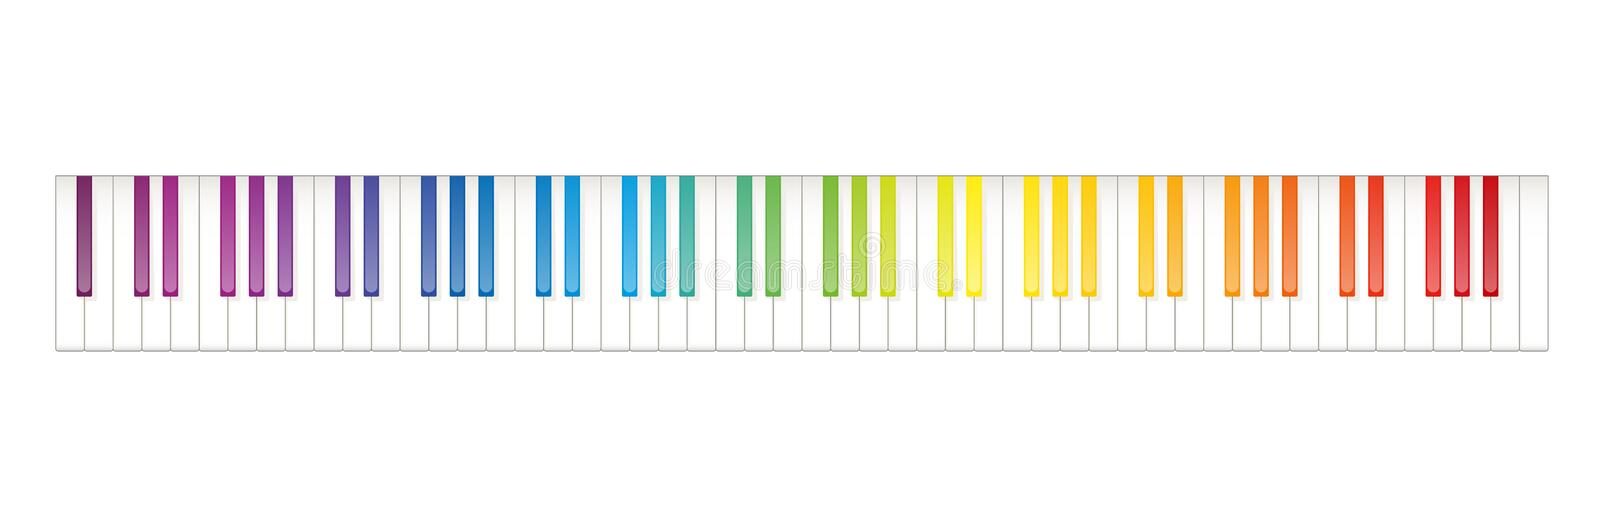 Rainbow Colored Piano Keyboard Seven Octaves. Grand piano keyboard layout with 88 keys. 52 white and 36 black keys, 7 full octaves. Set of levers on a musical stock illustration